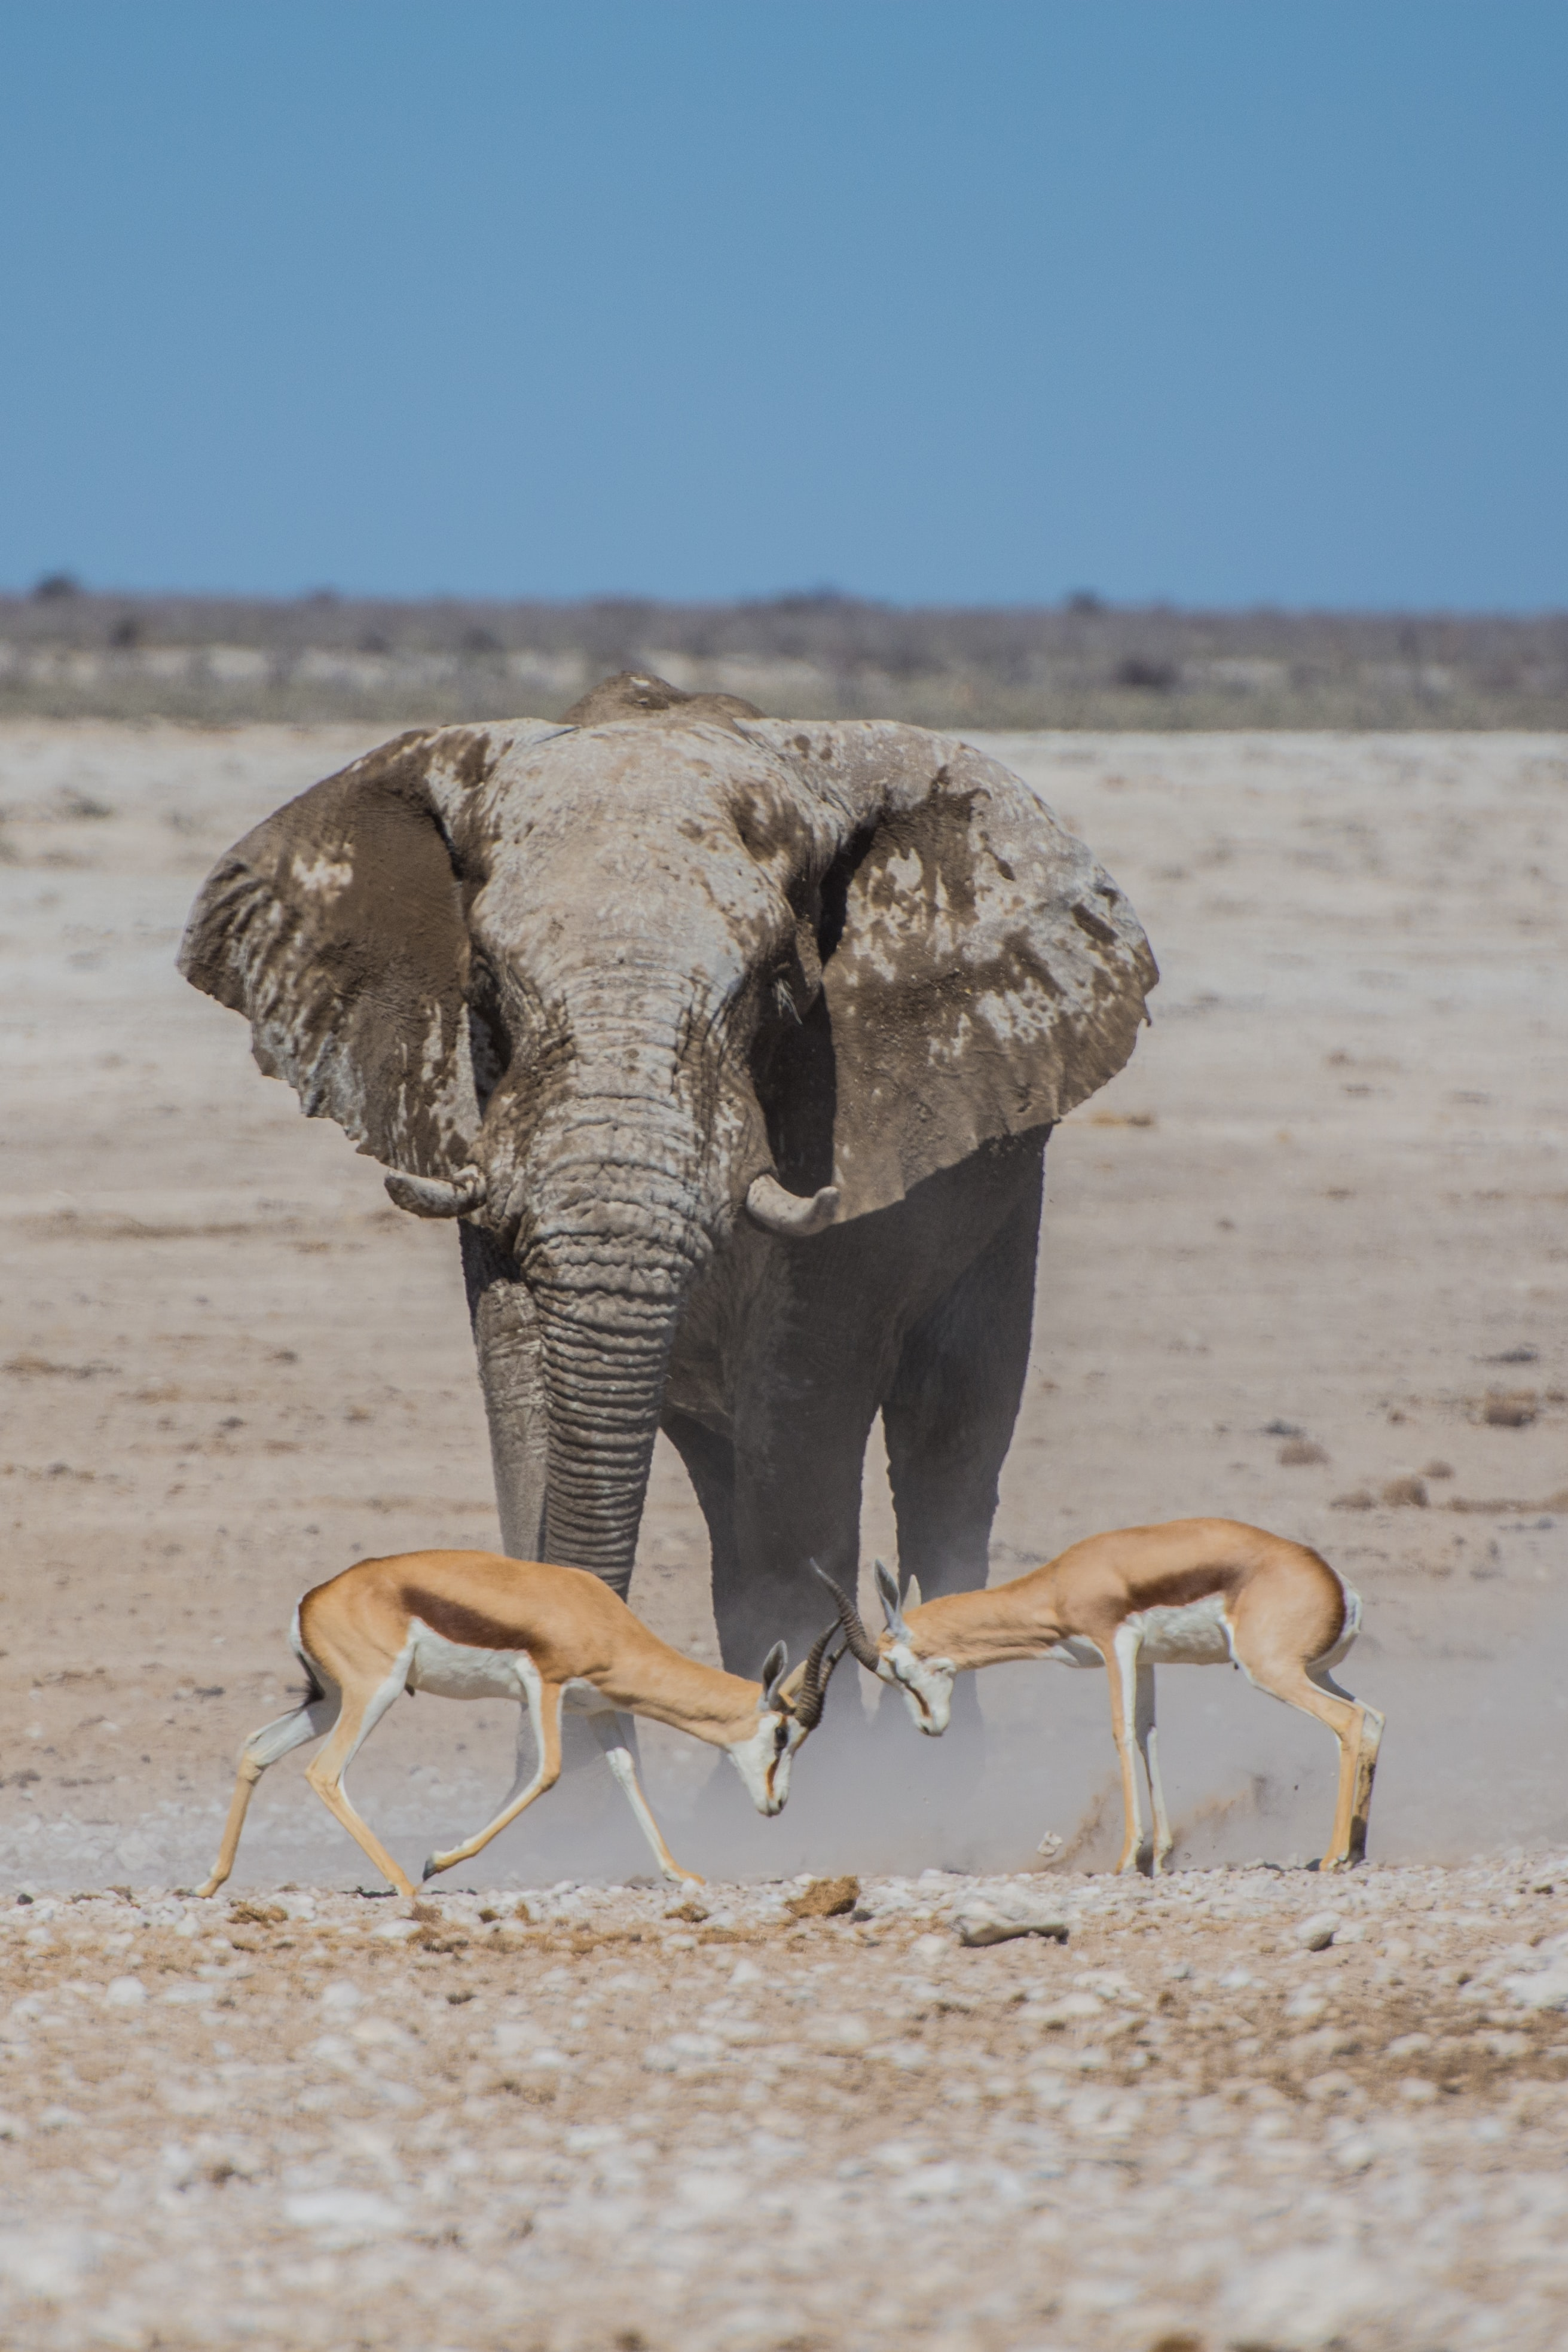 Two antelopes locking their horns in front of an elephant in a national park